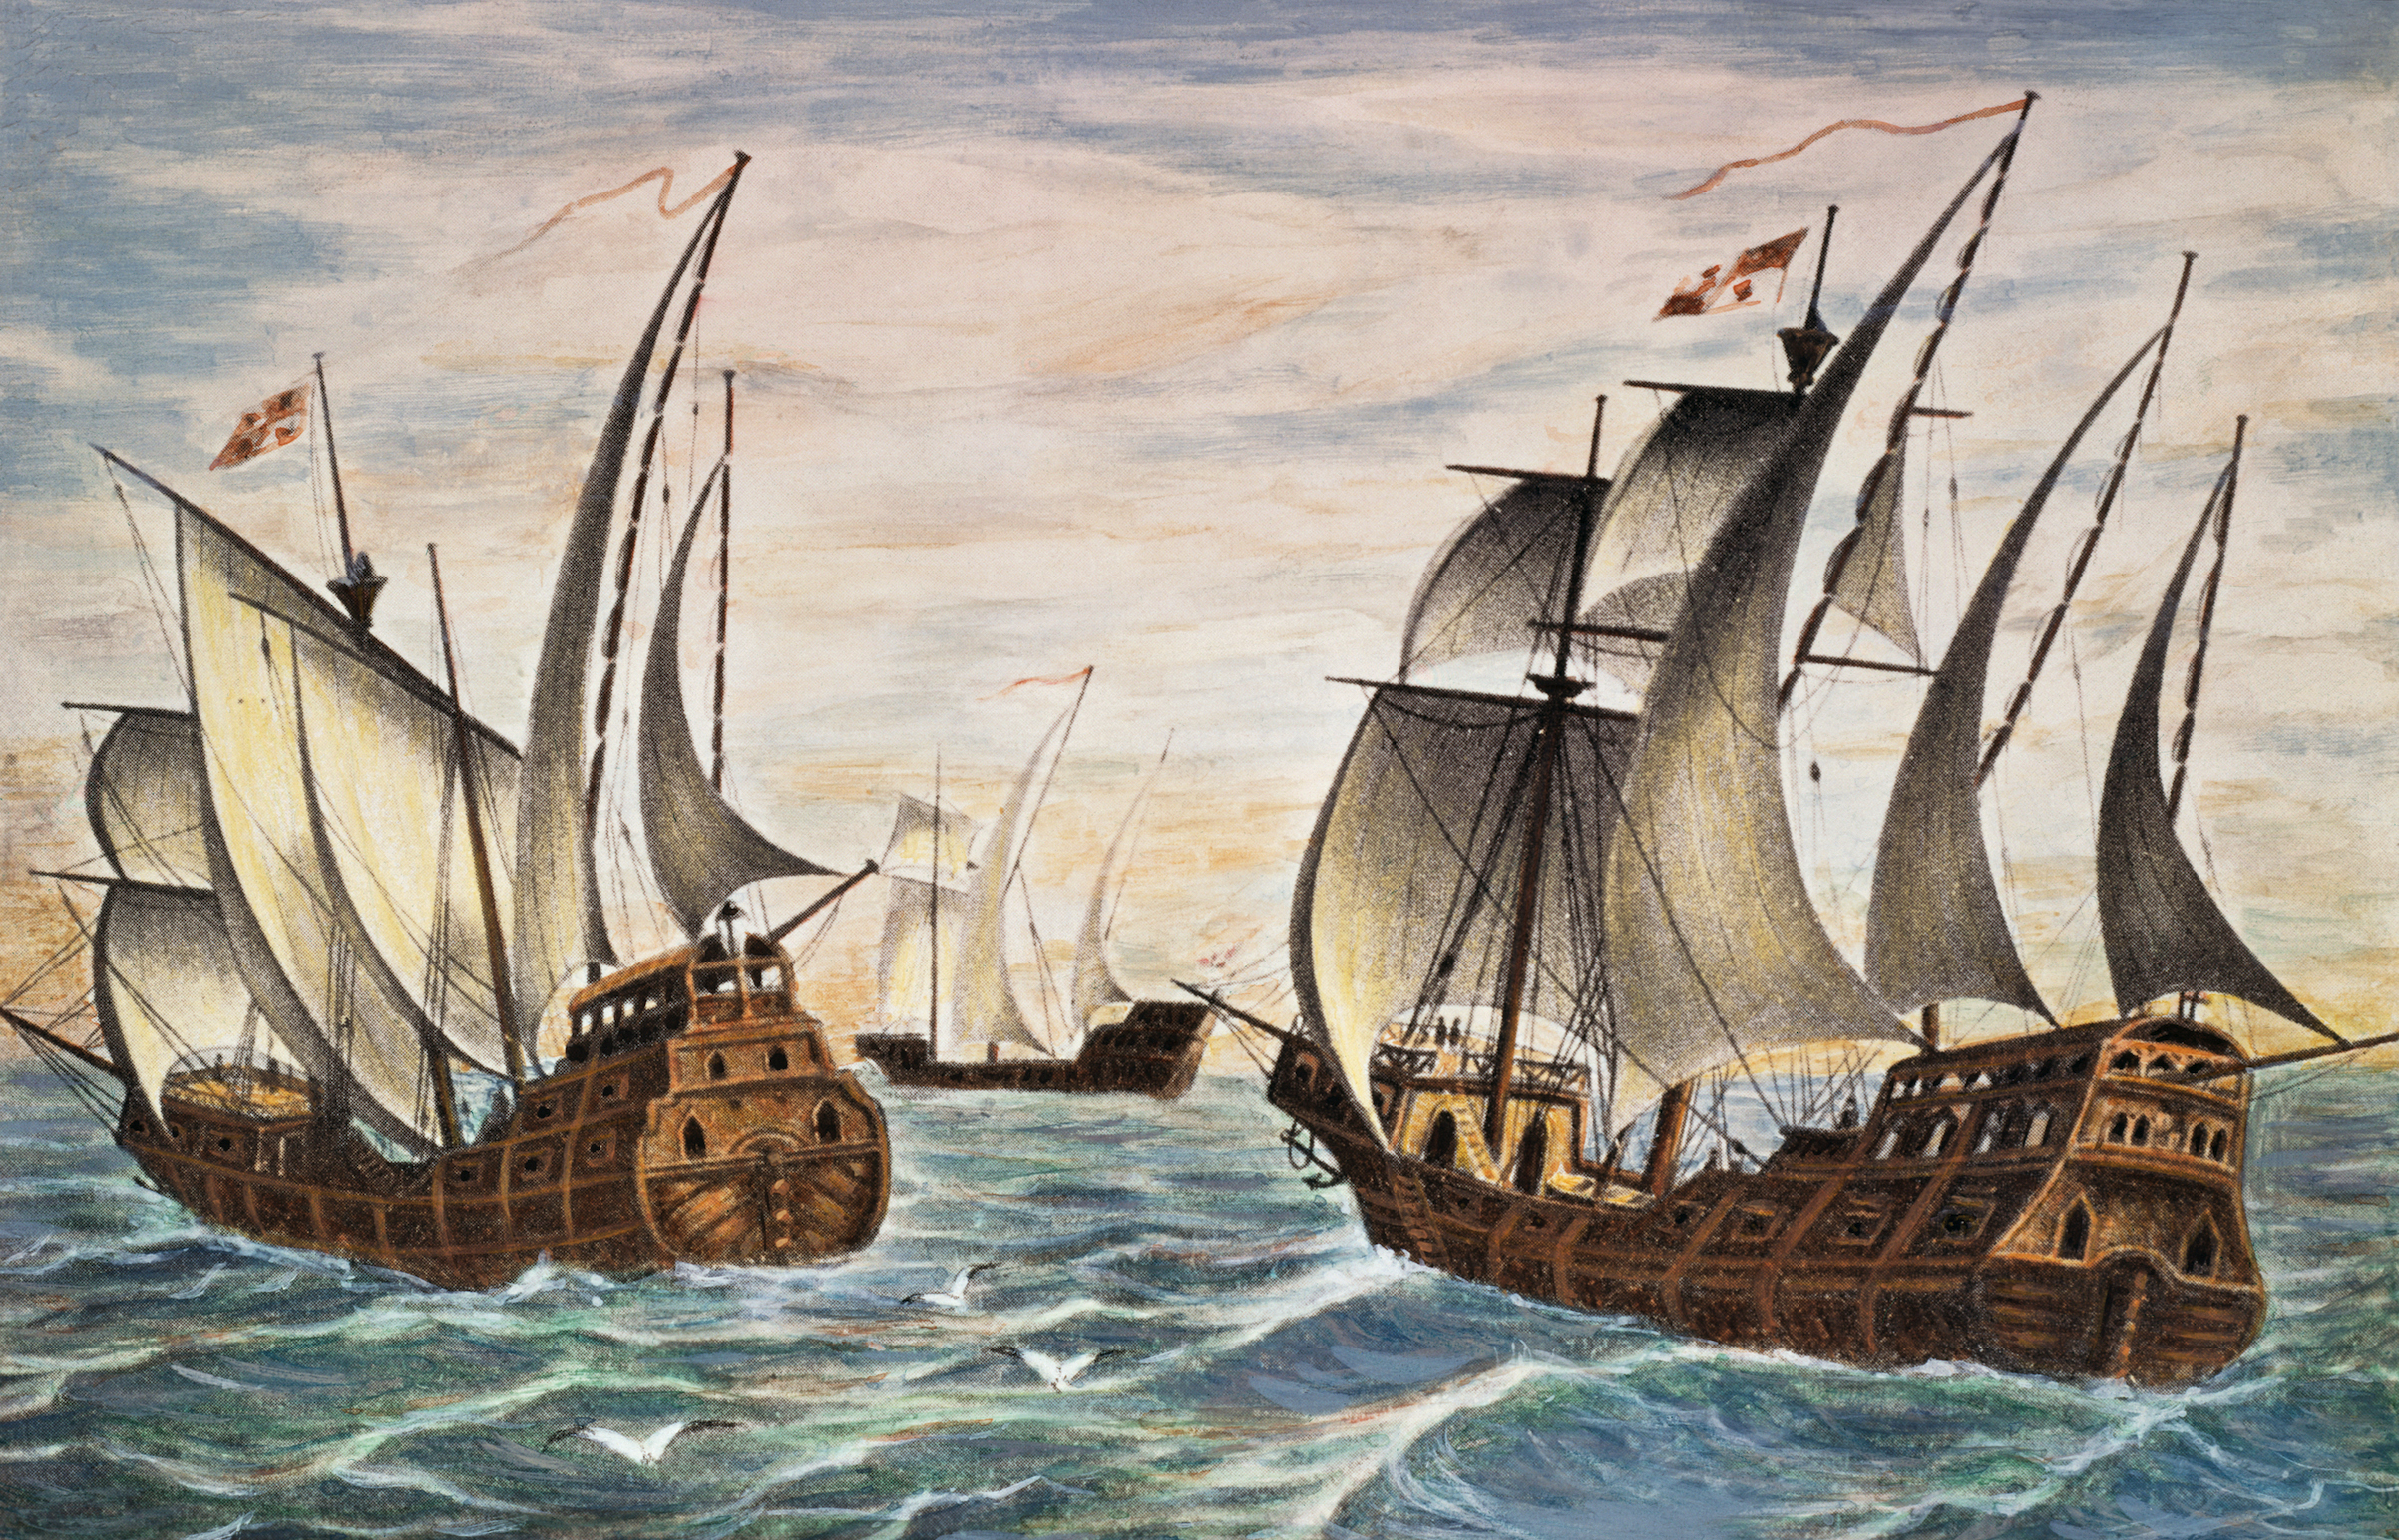 Illustration of the Nina, Pinta and Santa Maria, the fleet of Christopher Columbus.